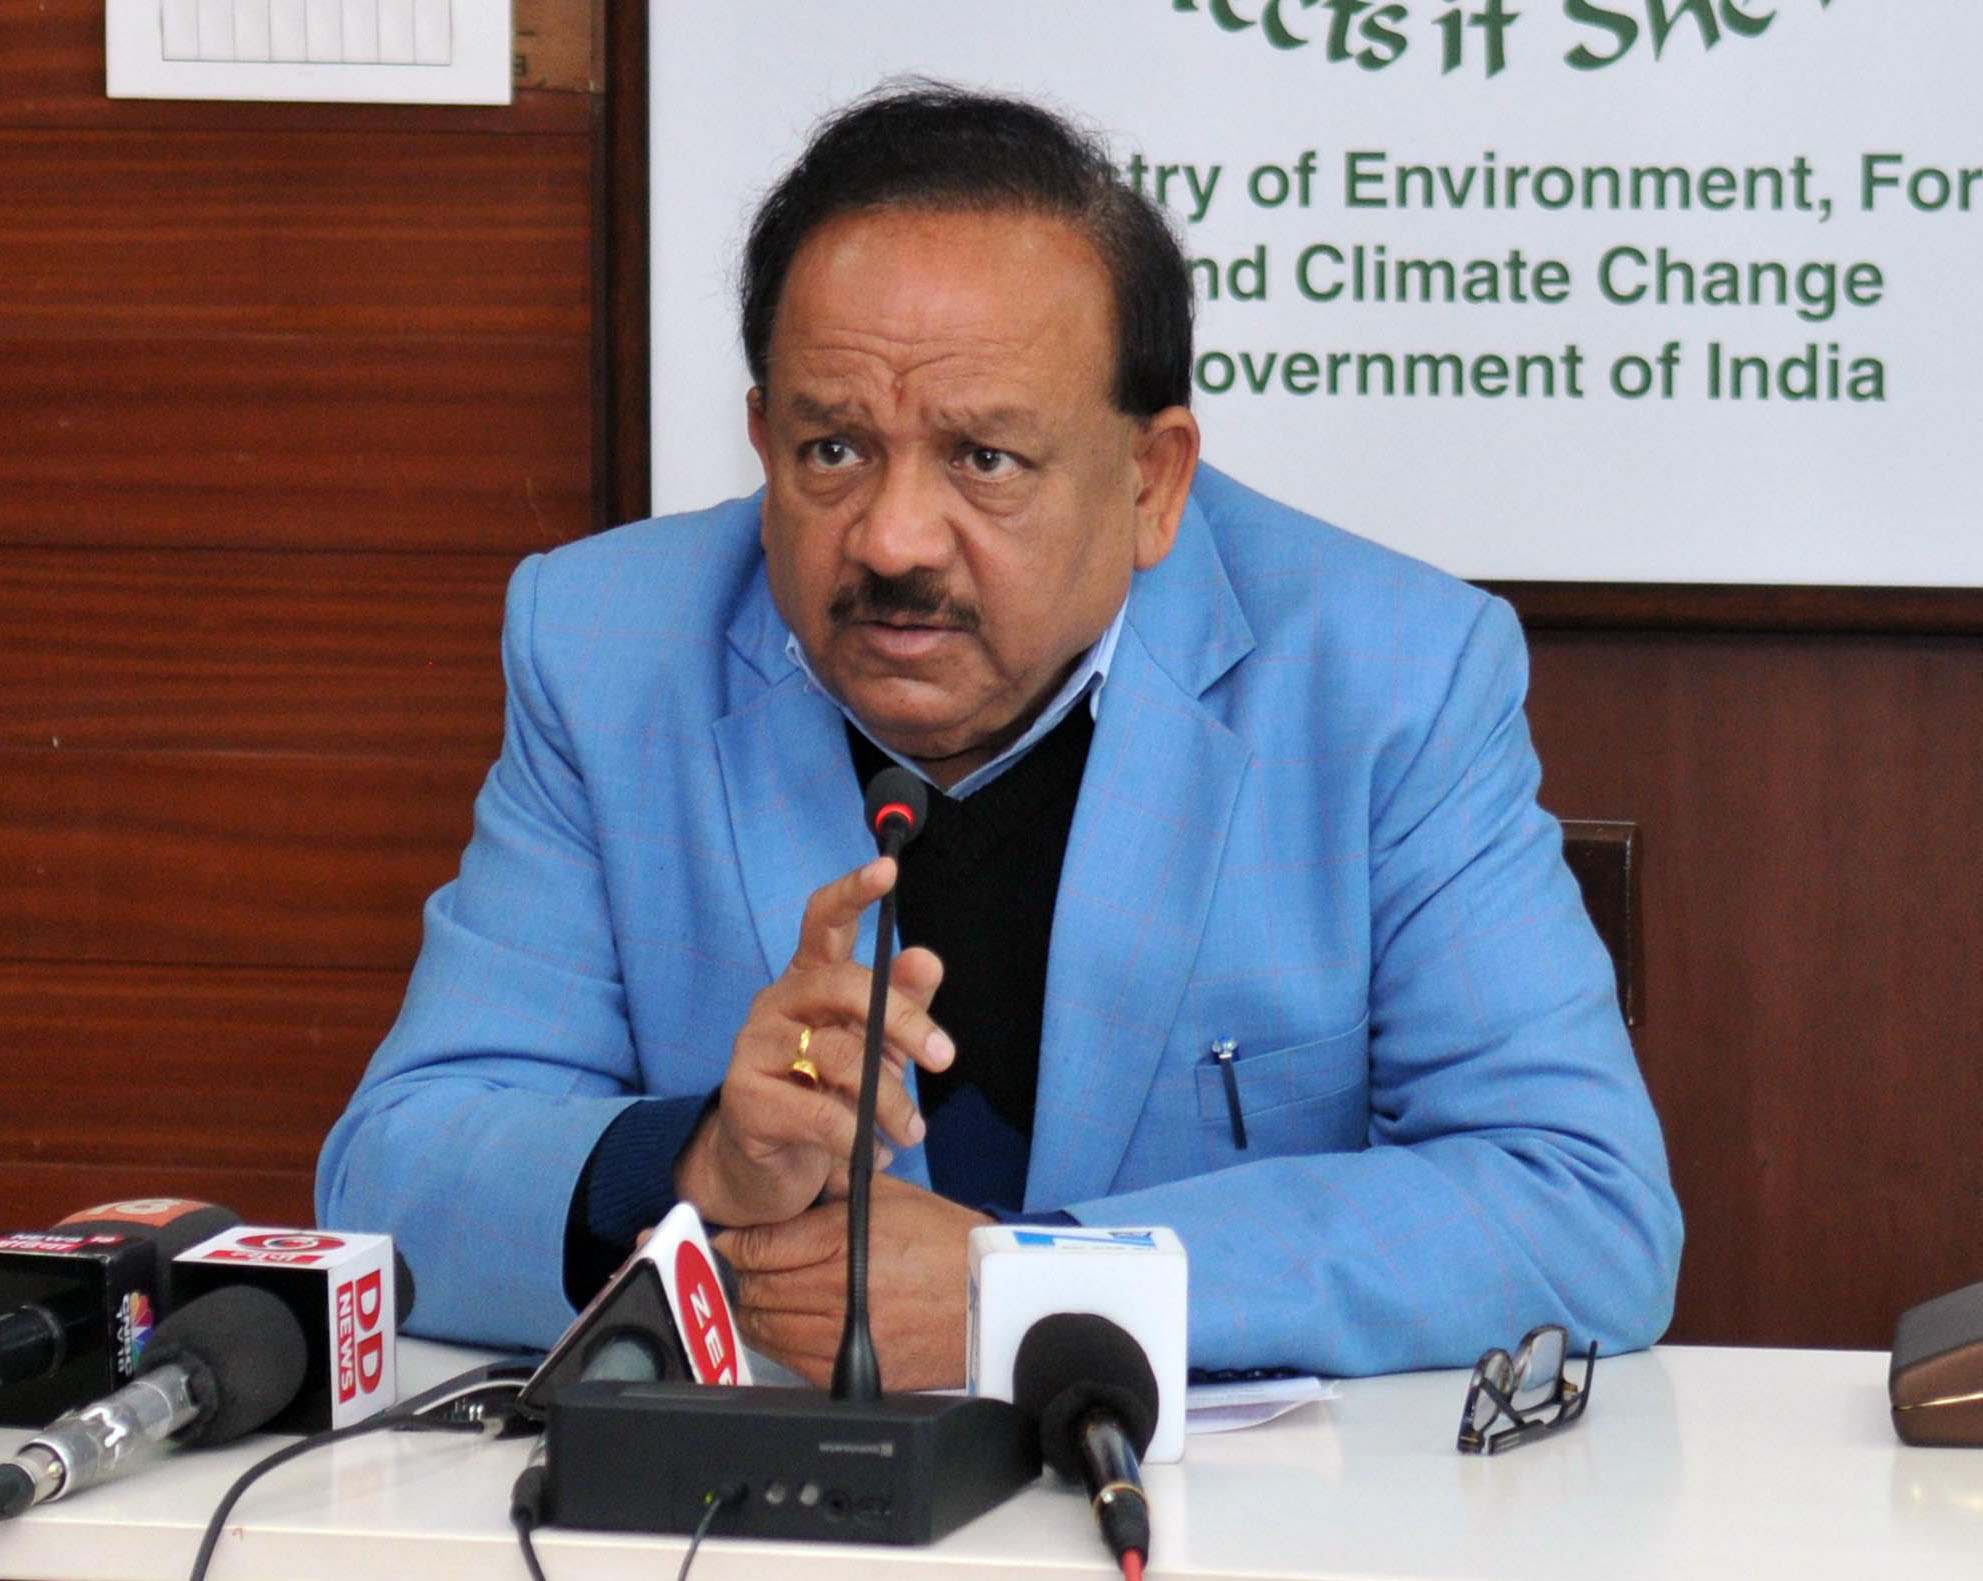 Our Aim is to Reduce and Keep COVID-19's Mortality Low: Dr Harsh Vardhan